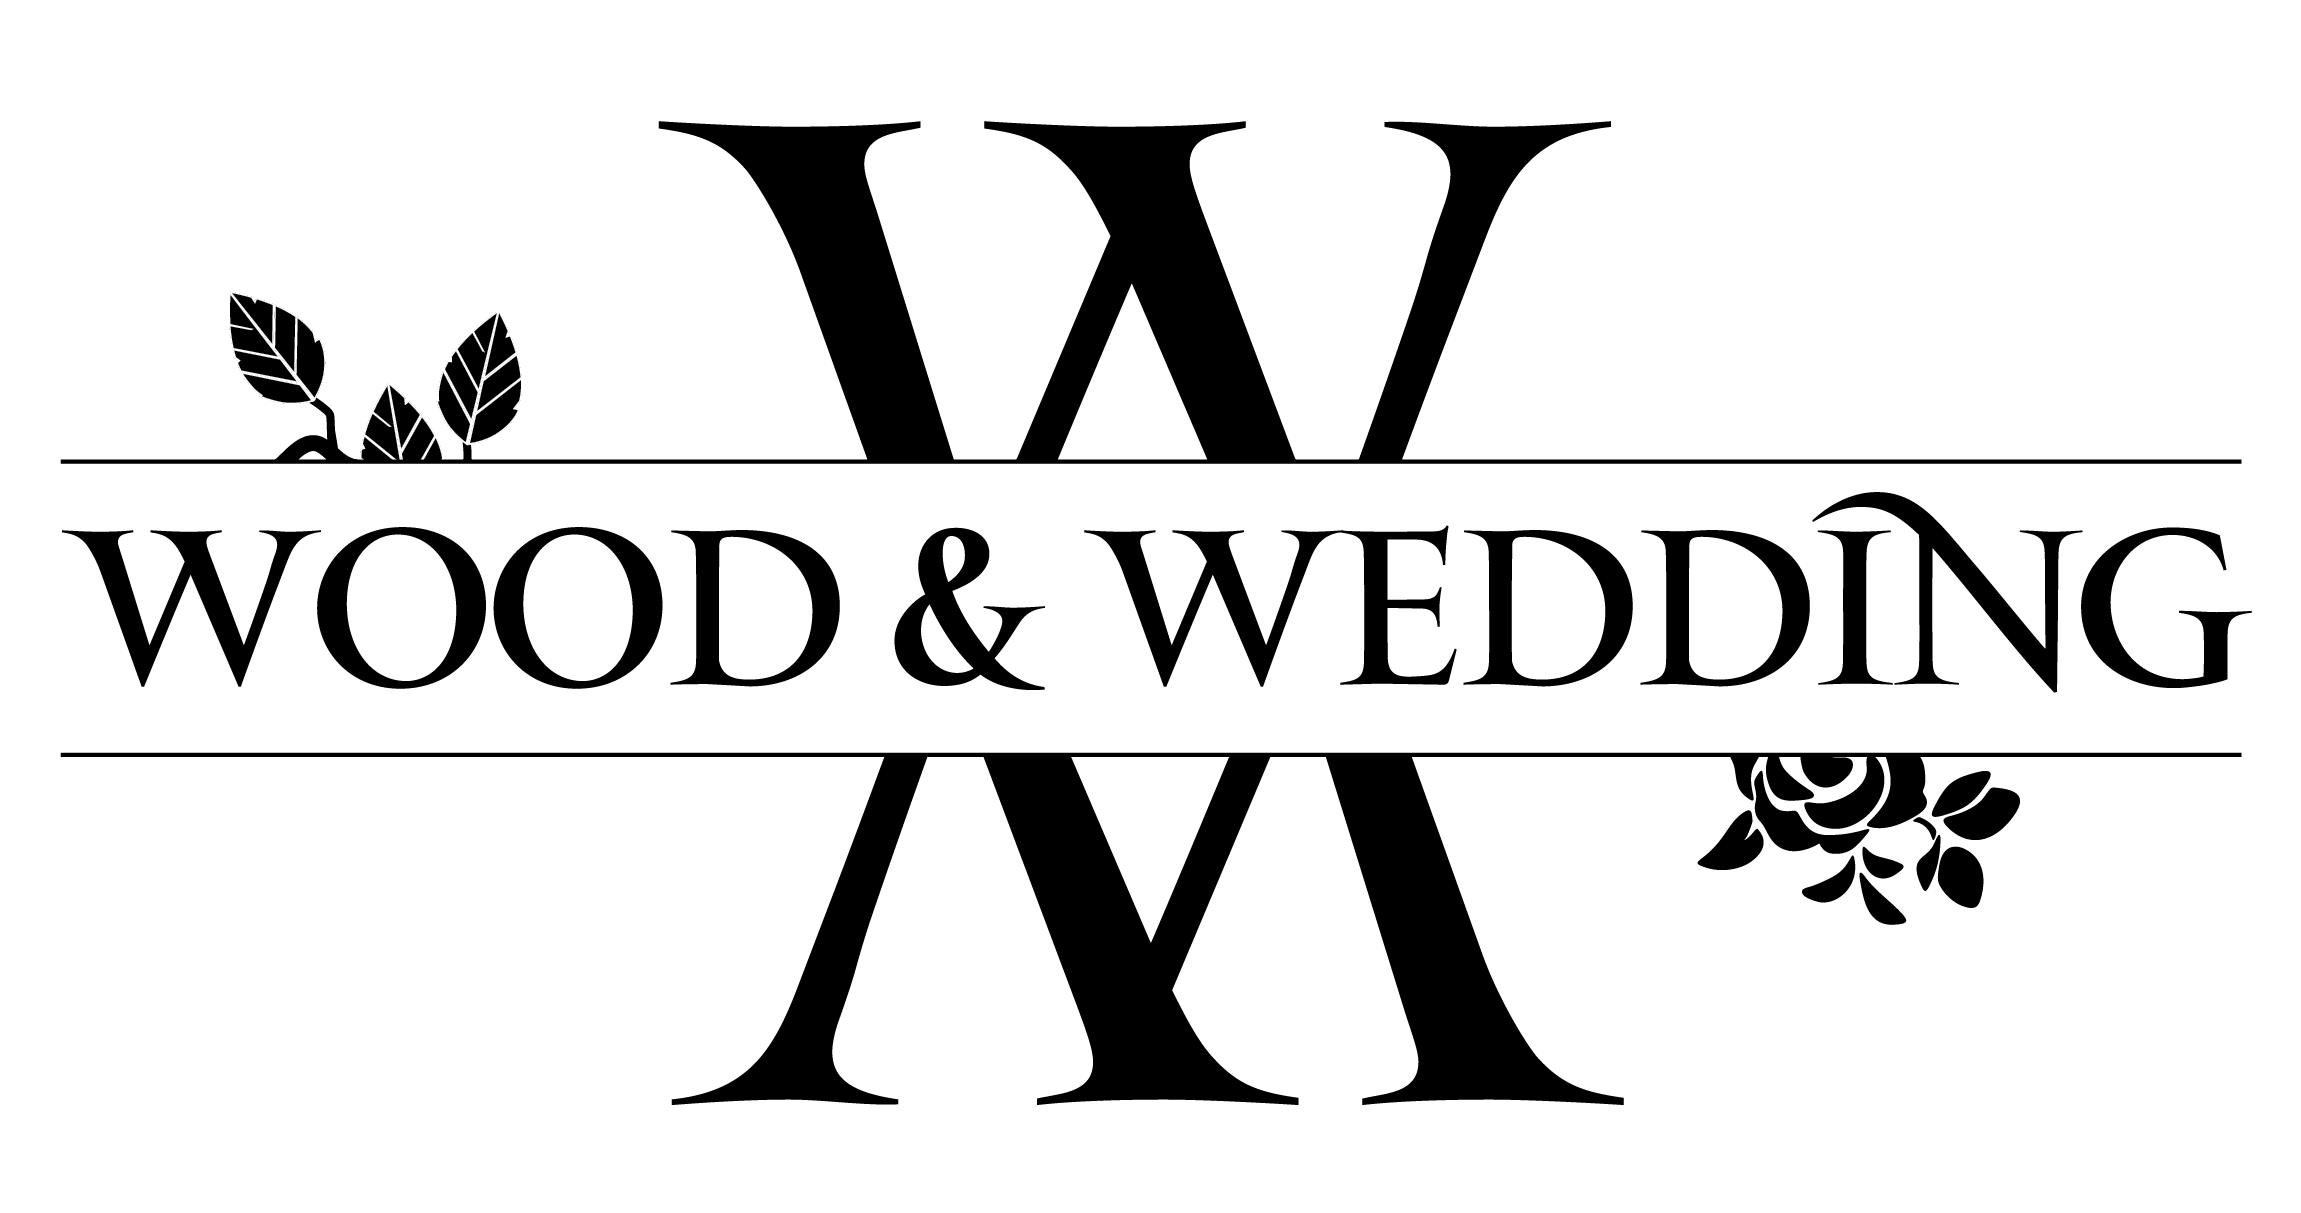 Wood & Wedding